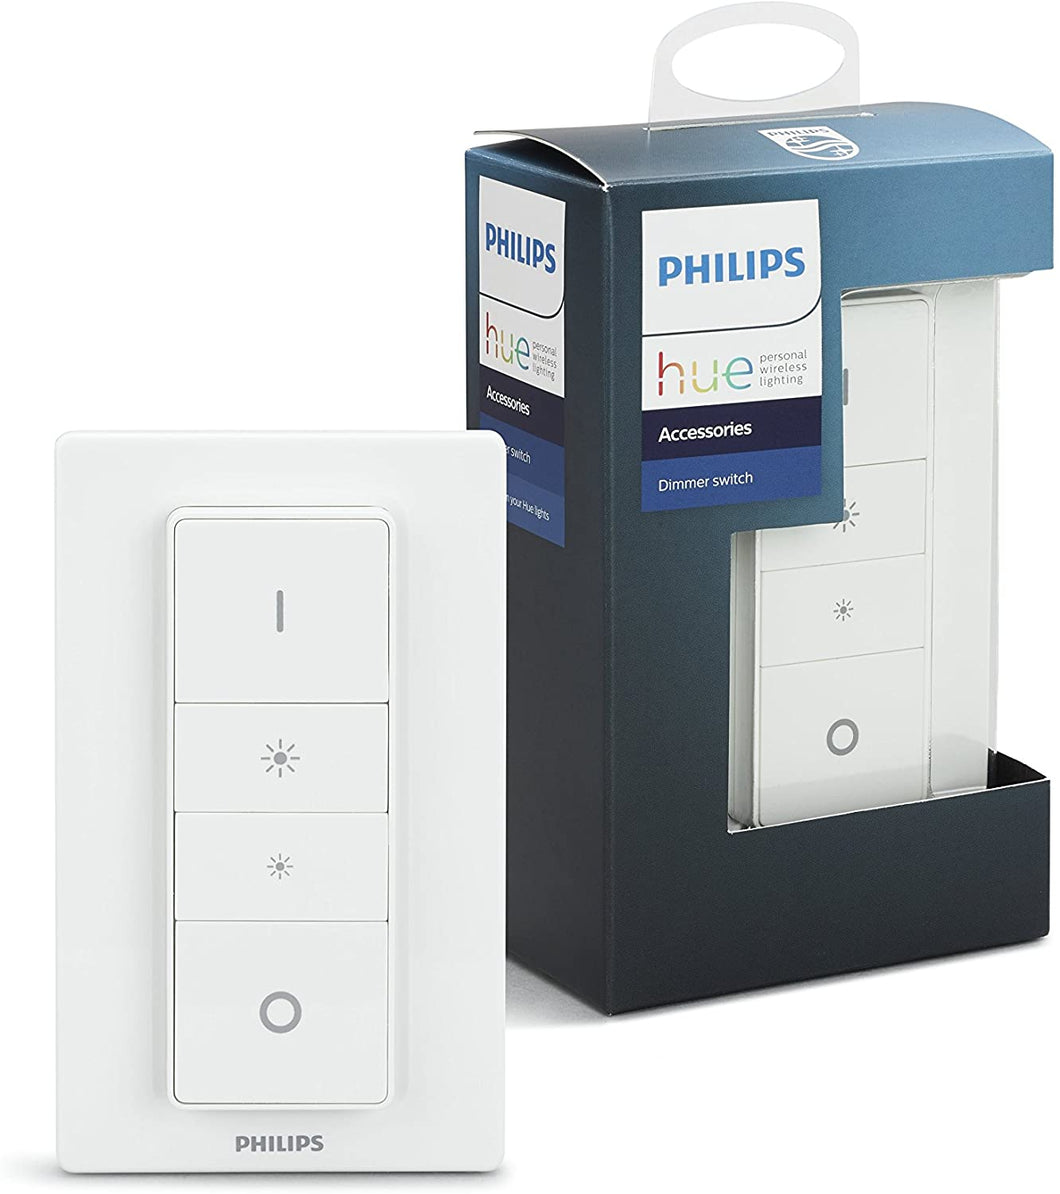 Dimmer Switch Wireless Philips Hue